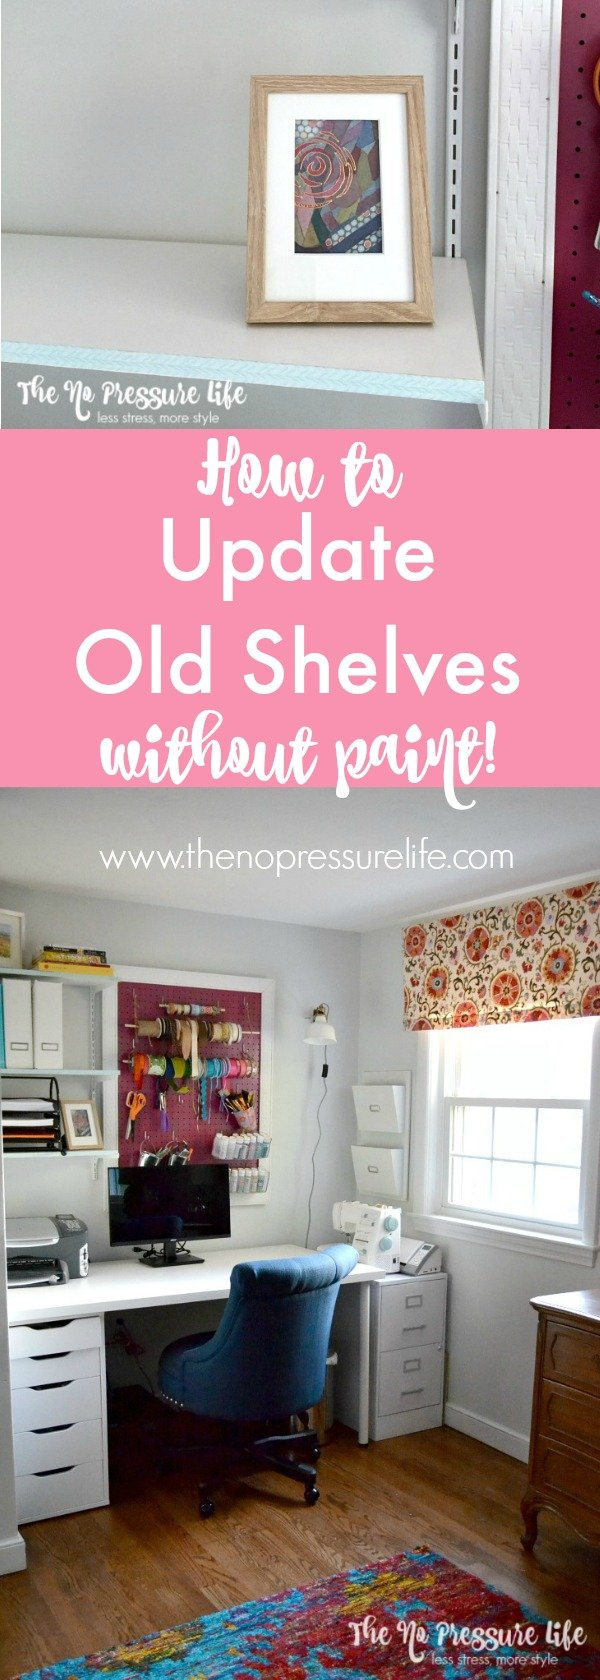 So easy! Update old shelves without paint! Use the same method for a quick bookcase makeover. | The No Pressure Life.